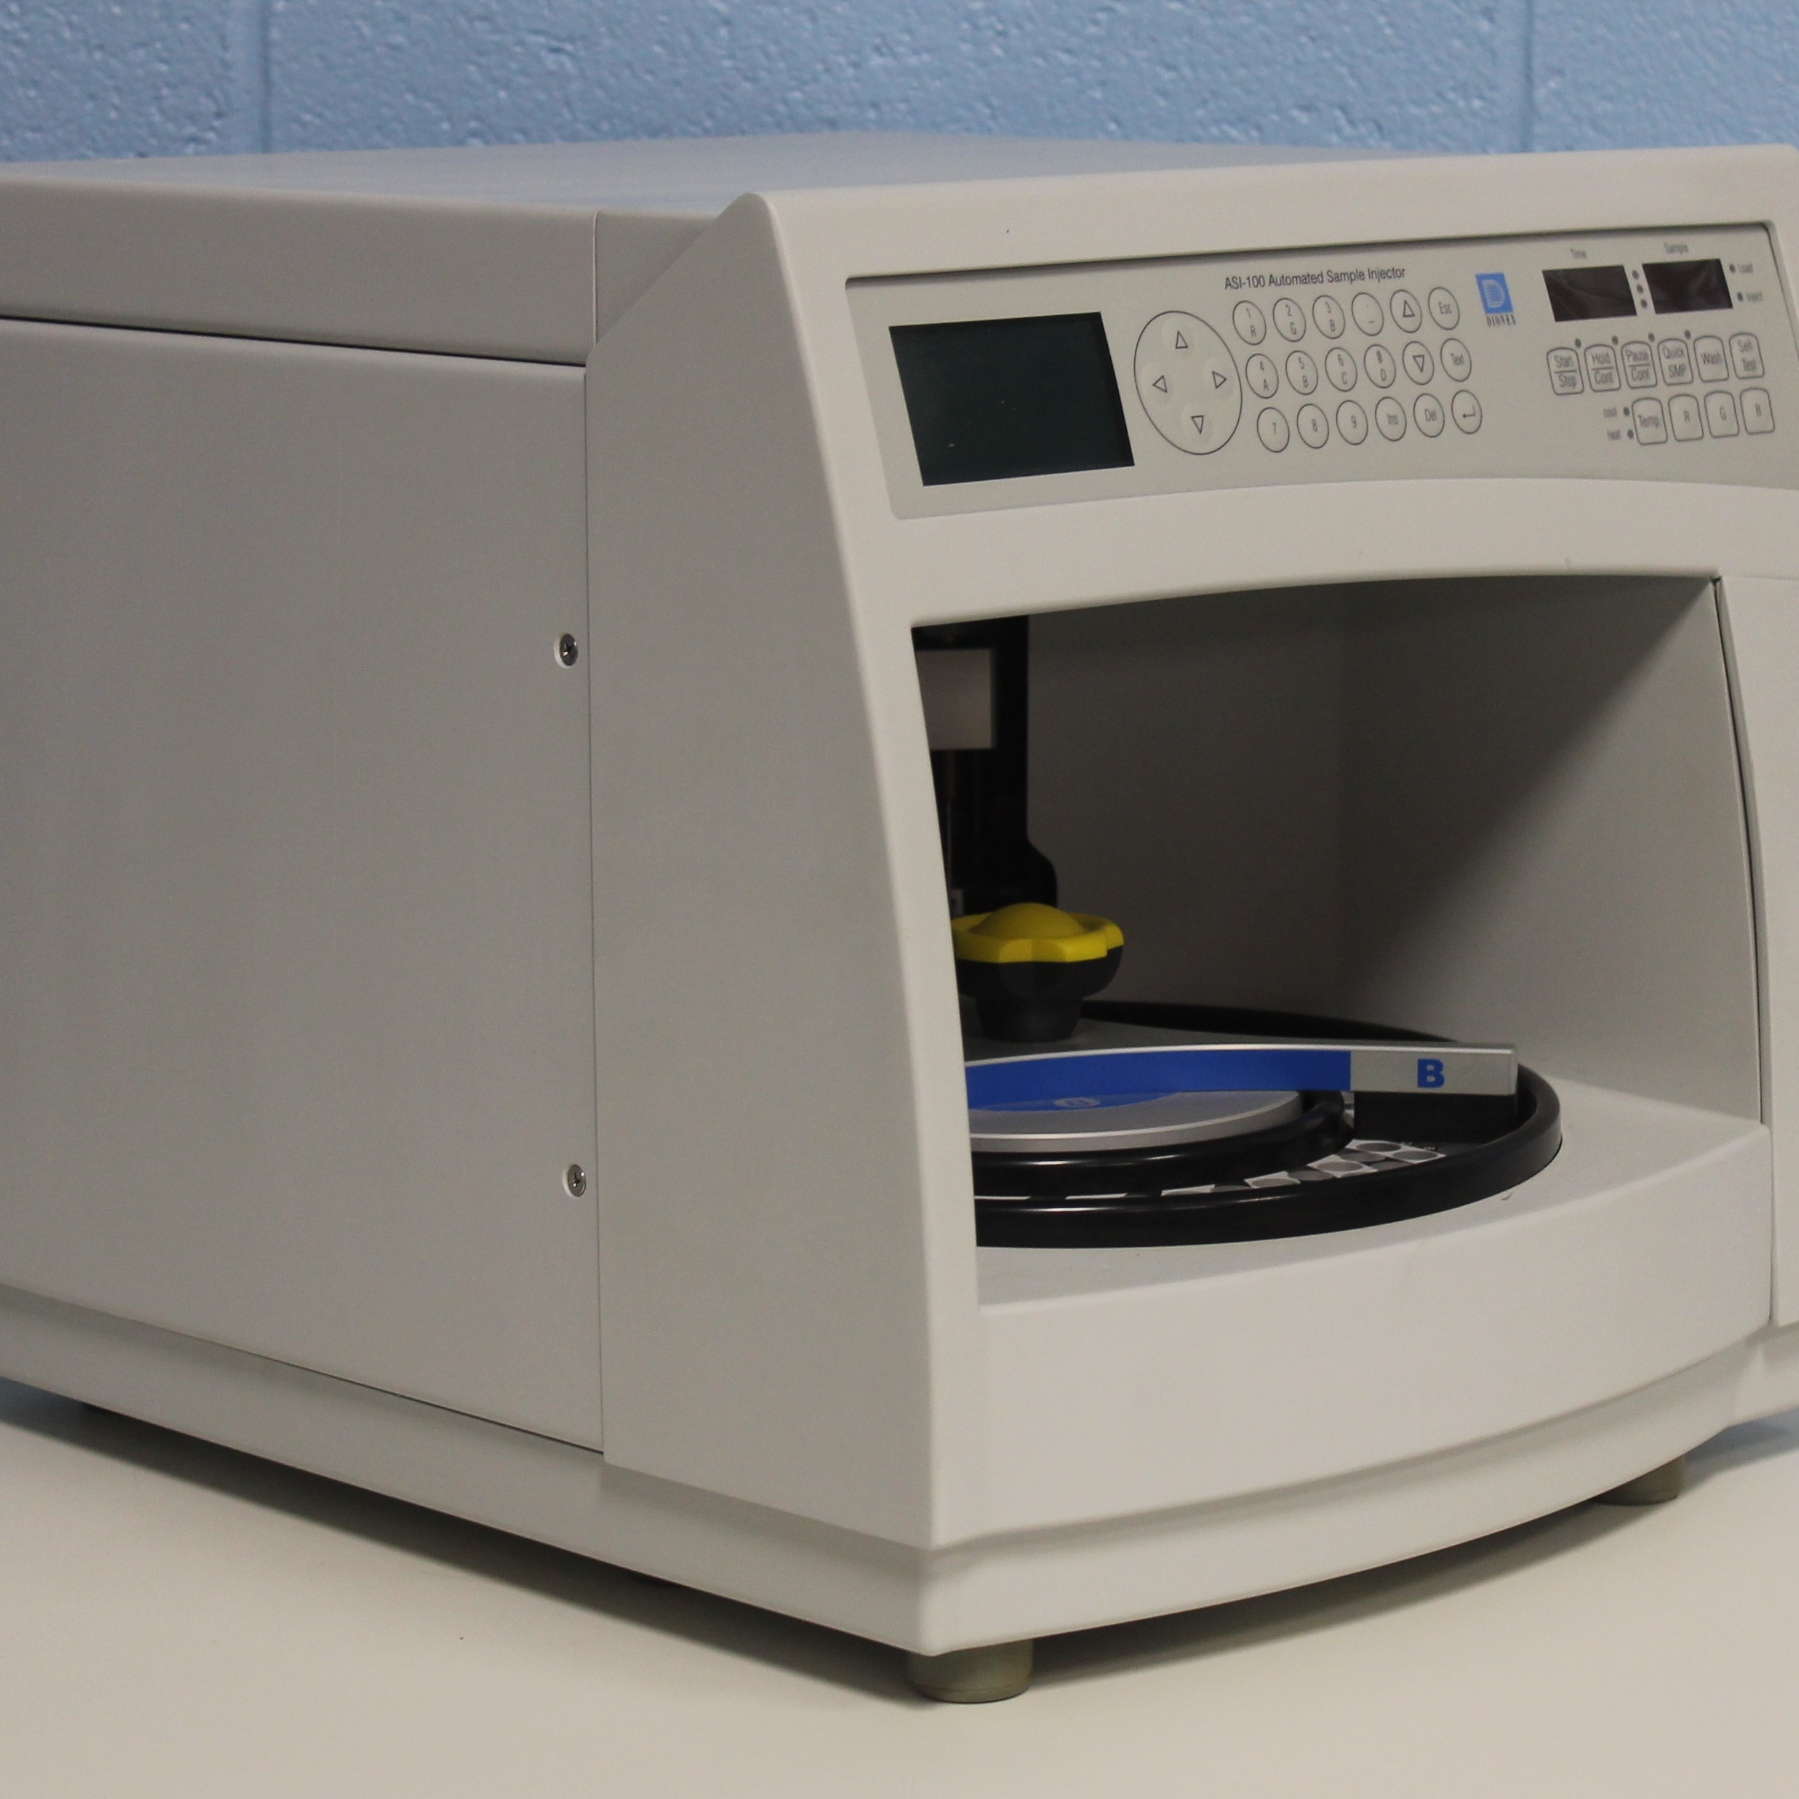 Dionex ASI-100 Automated Sample Injector Image